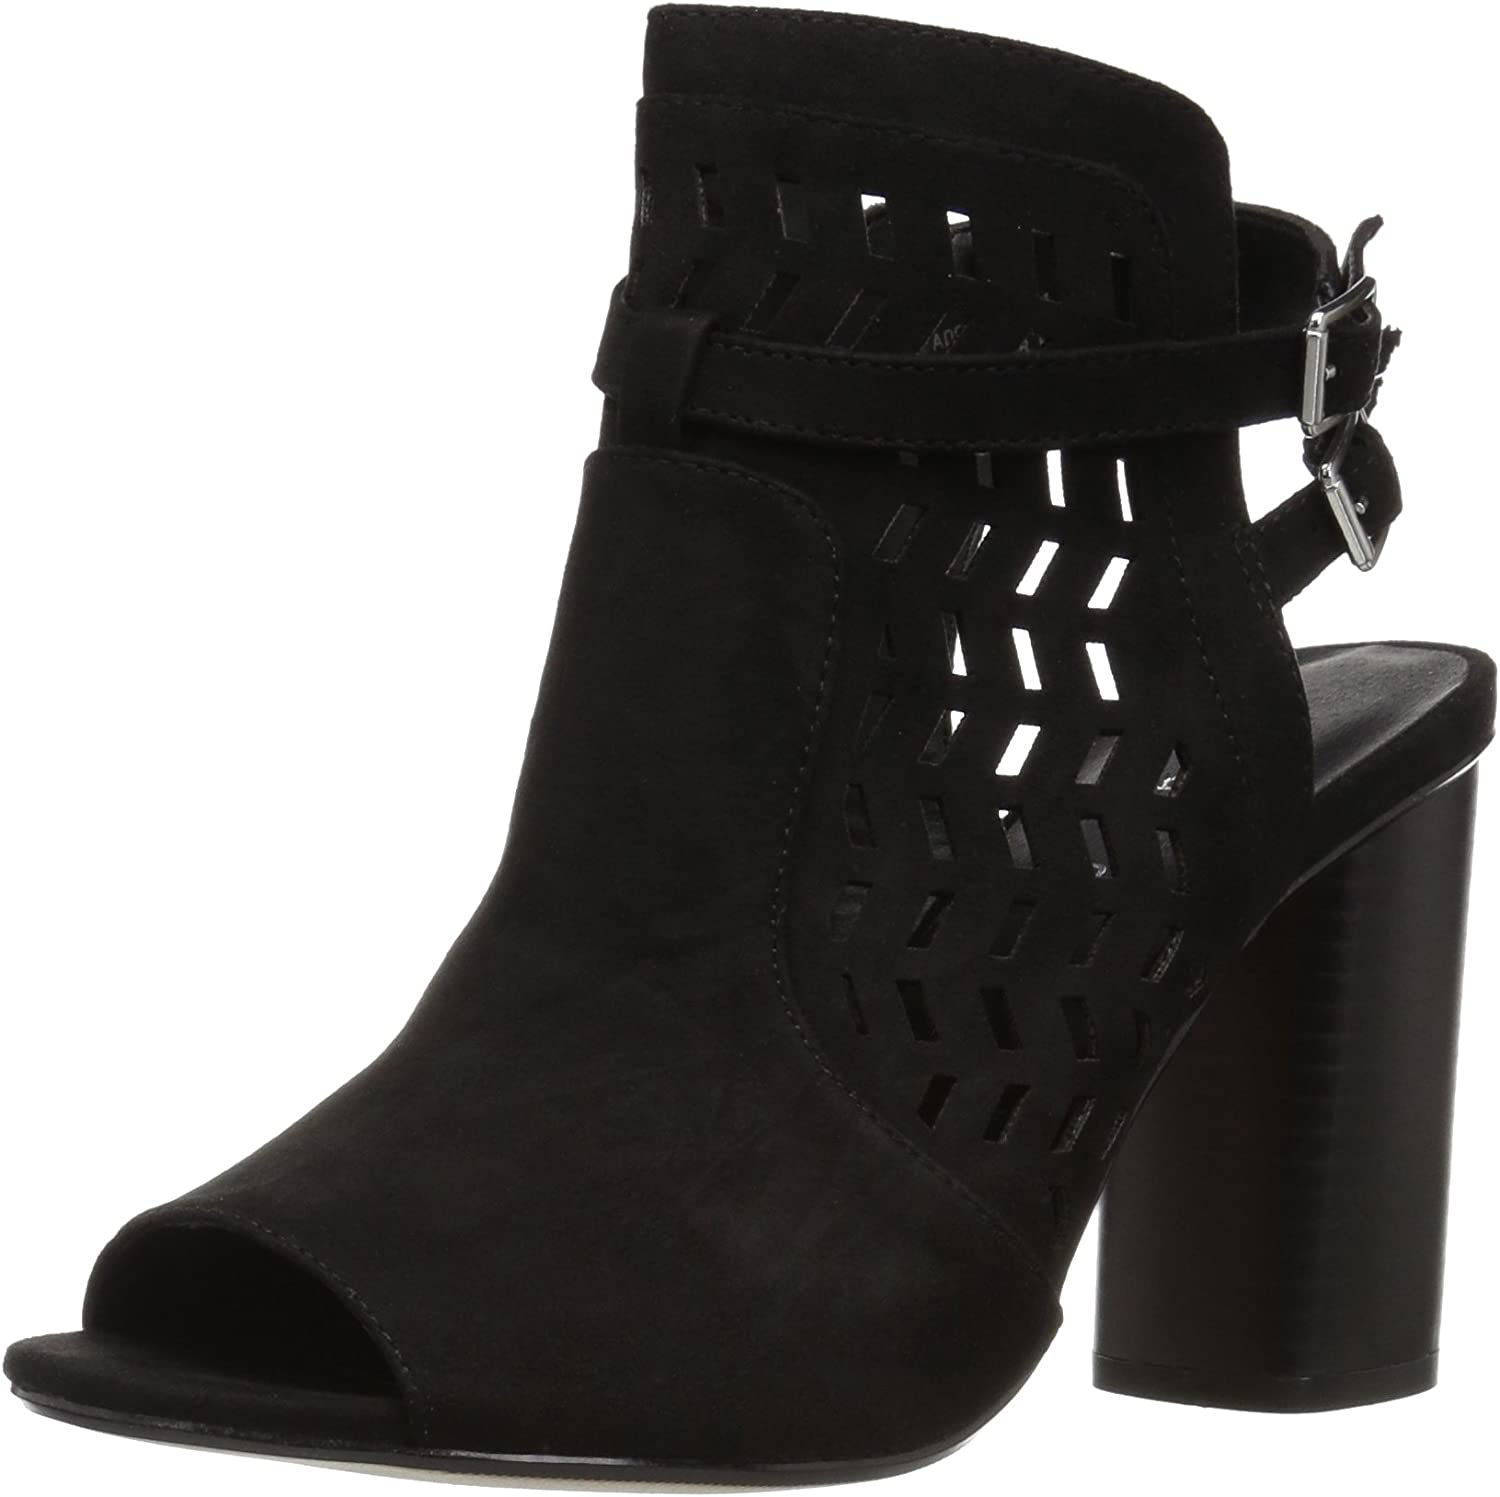 Madden girl Women's Addyy Heeled